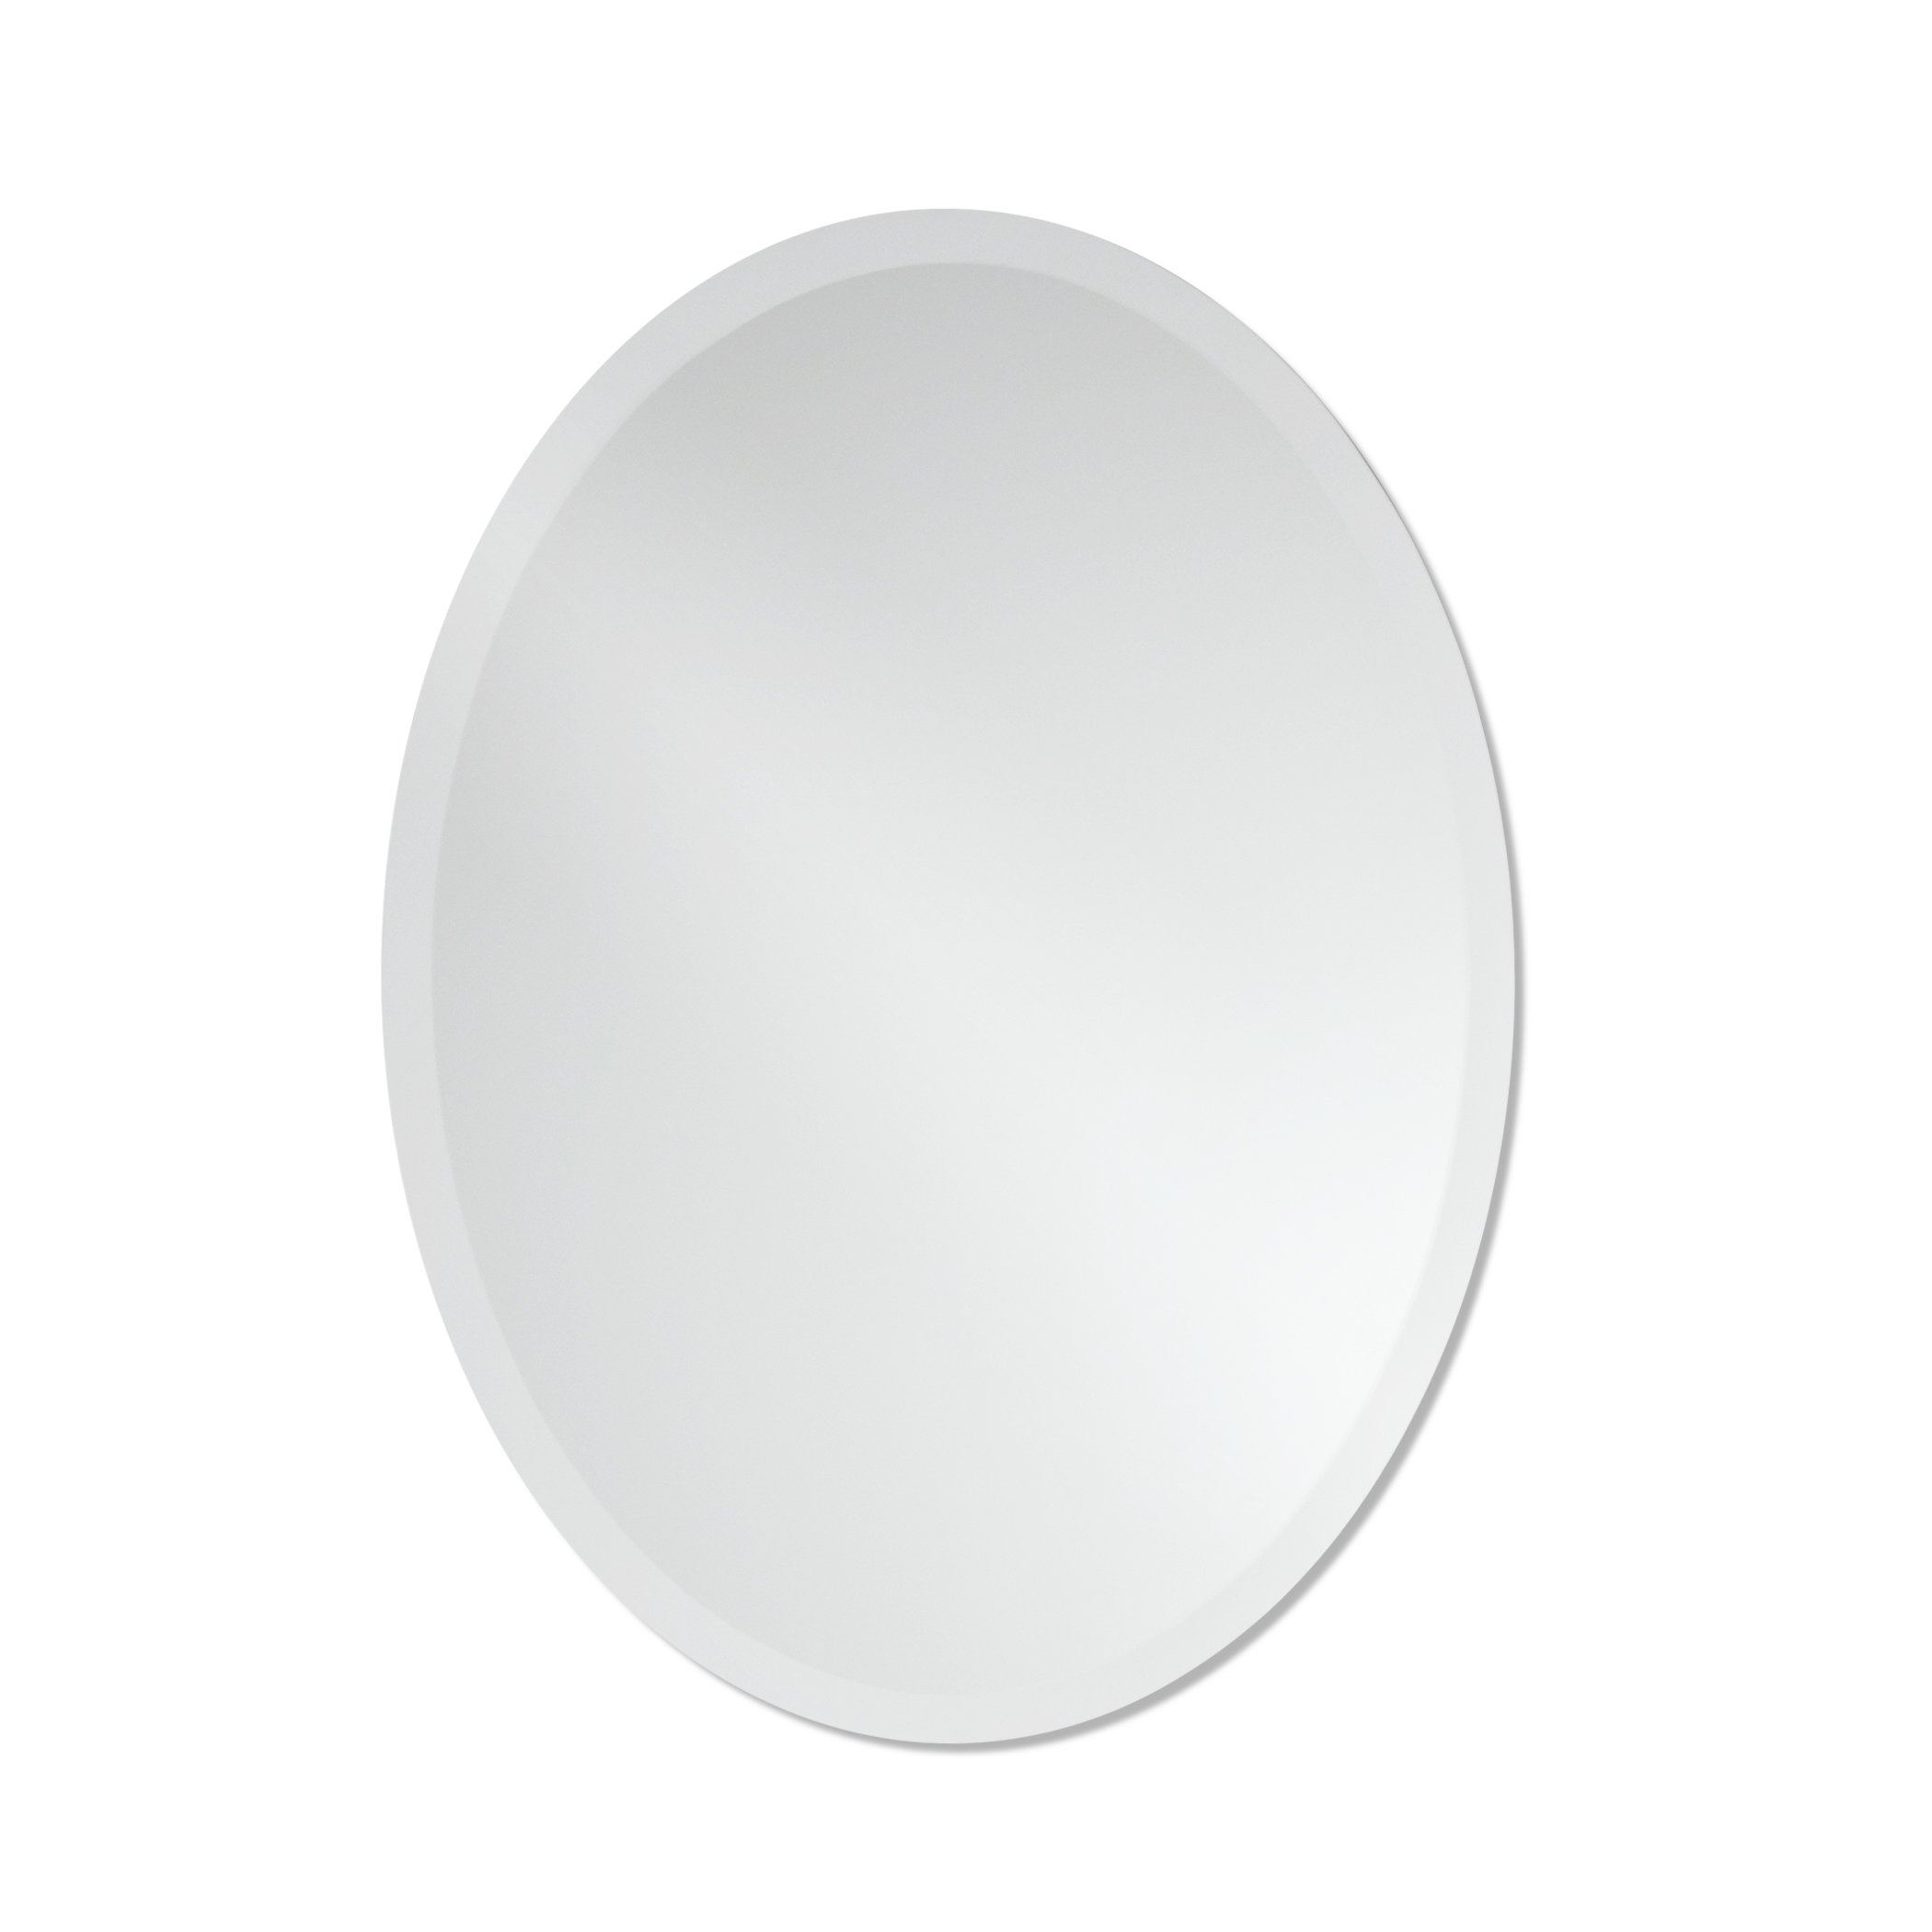 Small frameless beveled oval wall mirror bathroom - Frameless beveled mirrors for bathroom ...